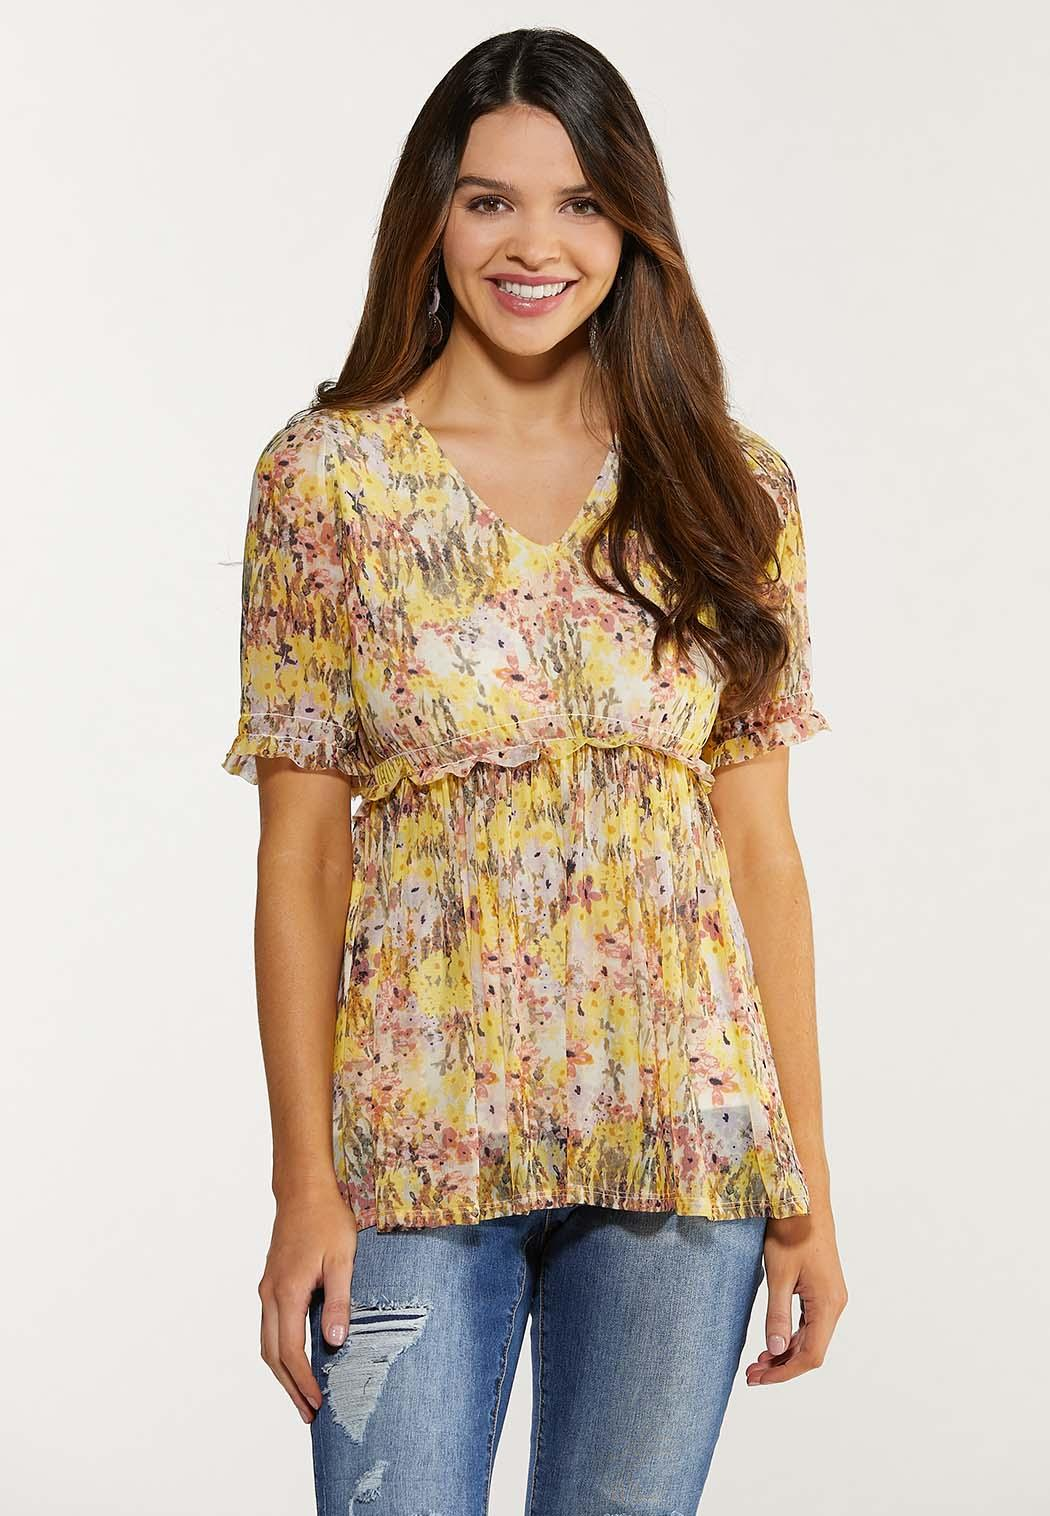 Plus Size Floral Mesh Babydoll Top Tees Knit Tops Cato Fashions